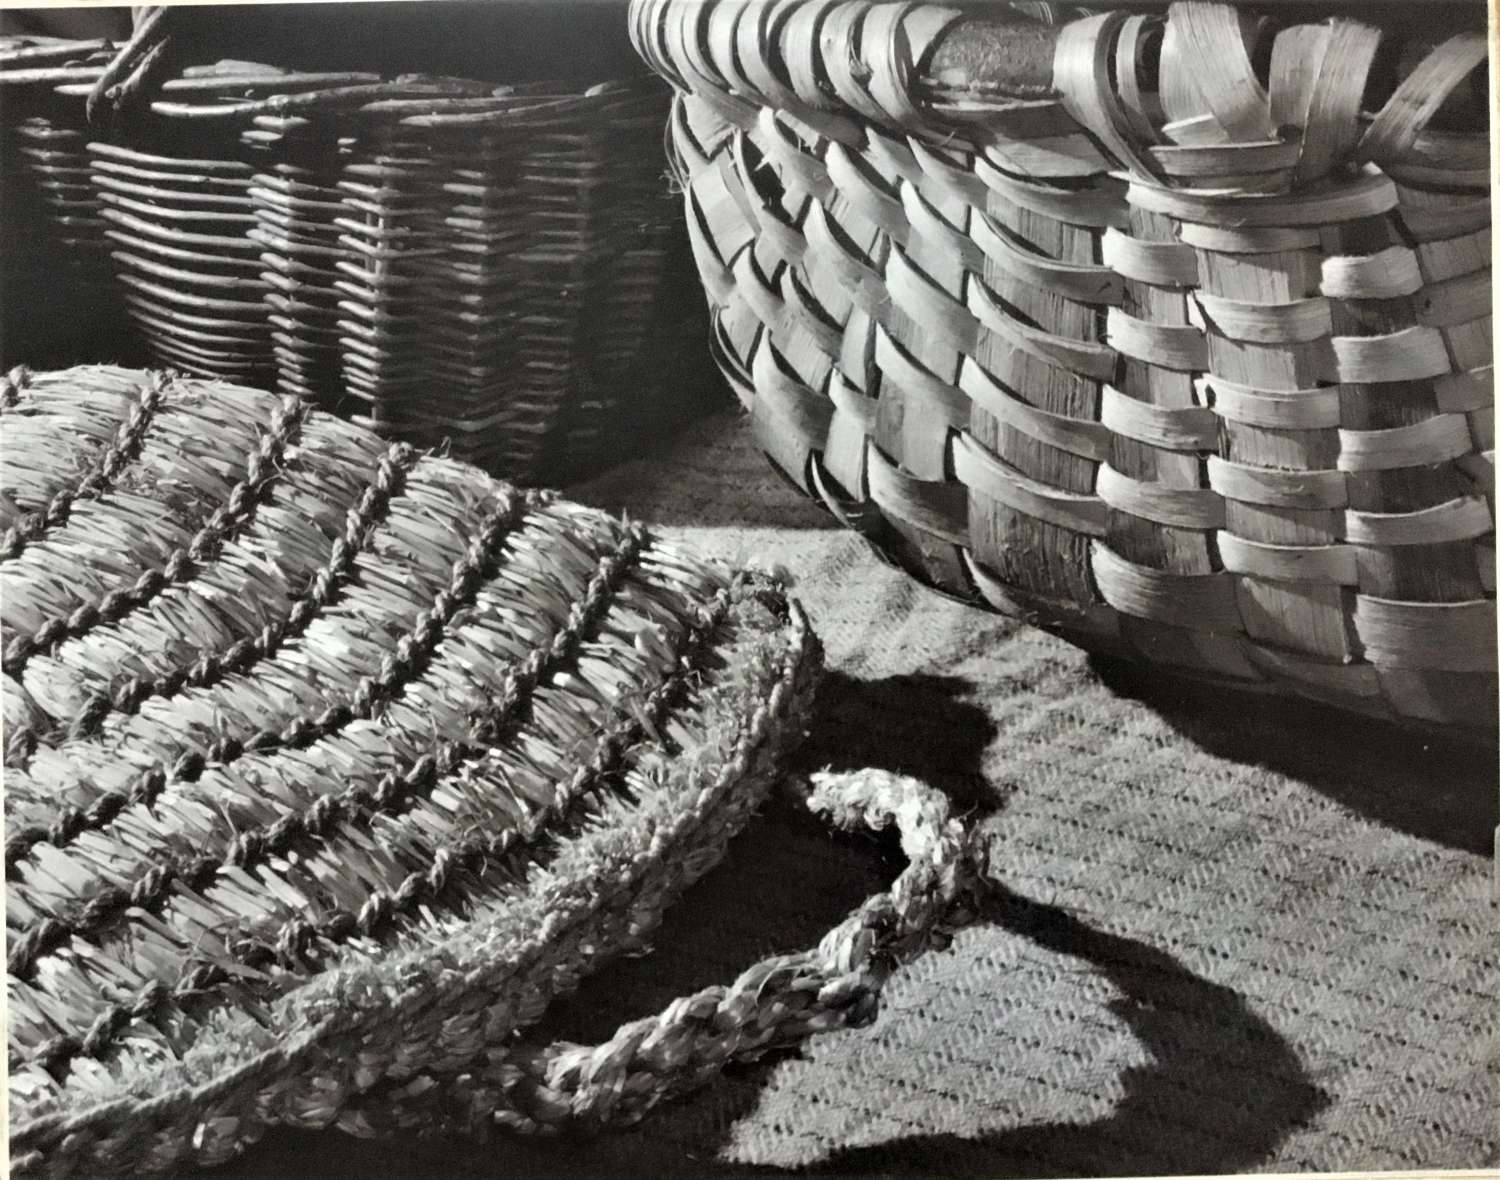 ' Basketry '  Margaret F. Harker. England 1954